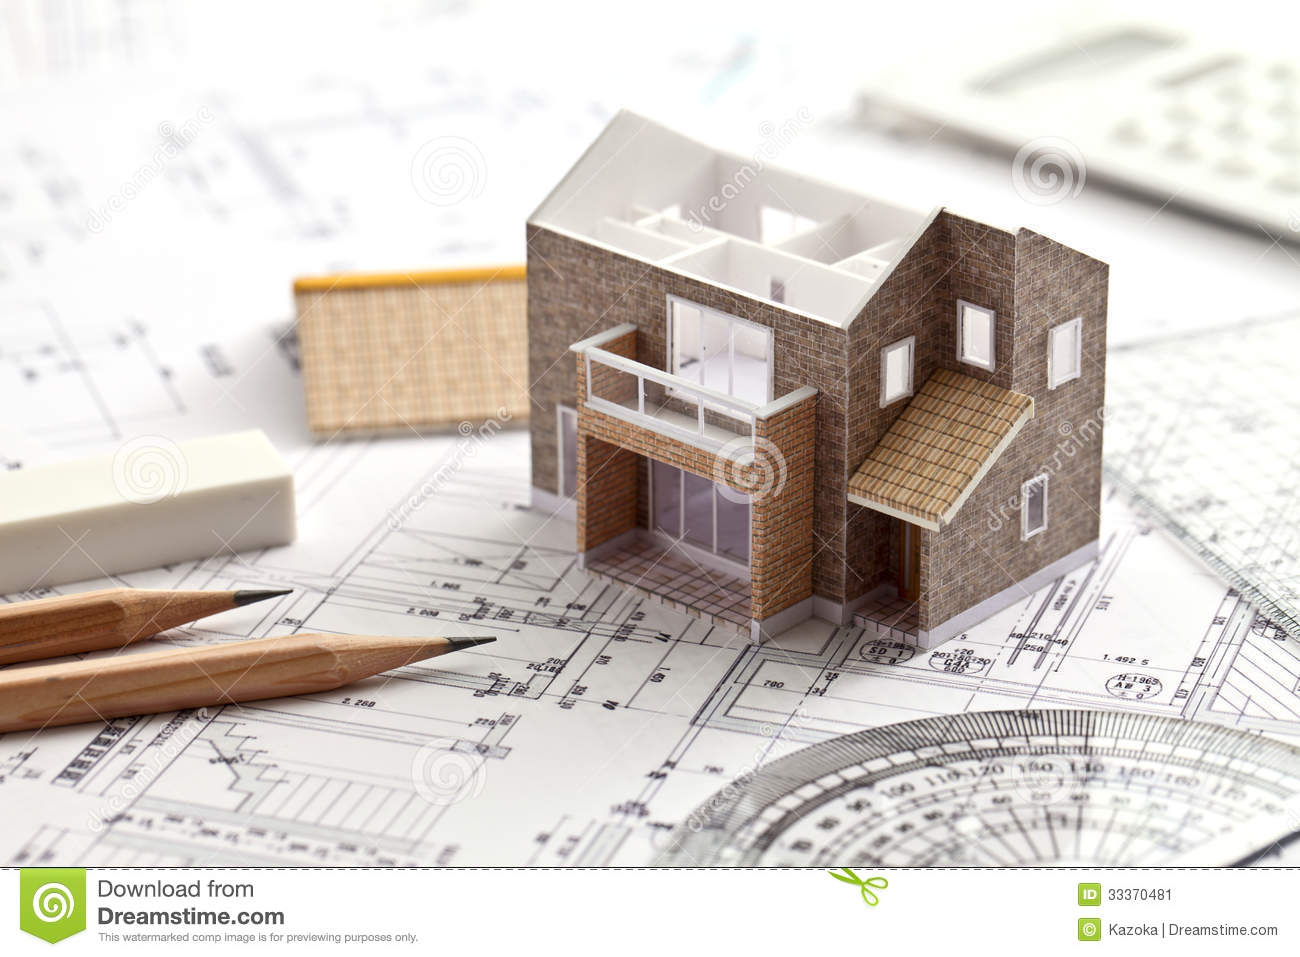 House design drawing stock image image of object paper for Home design drawing